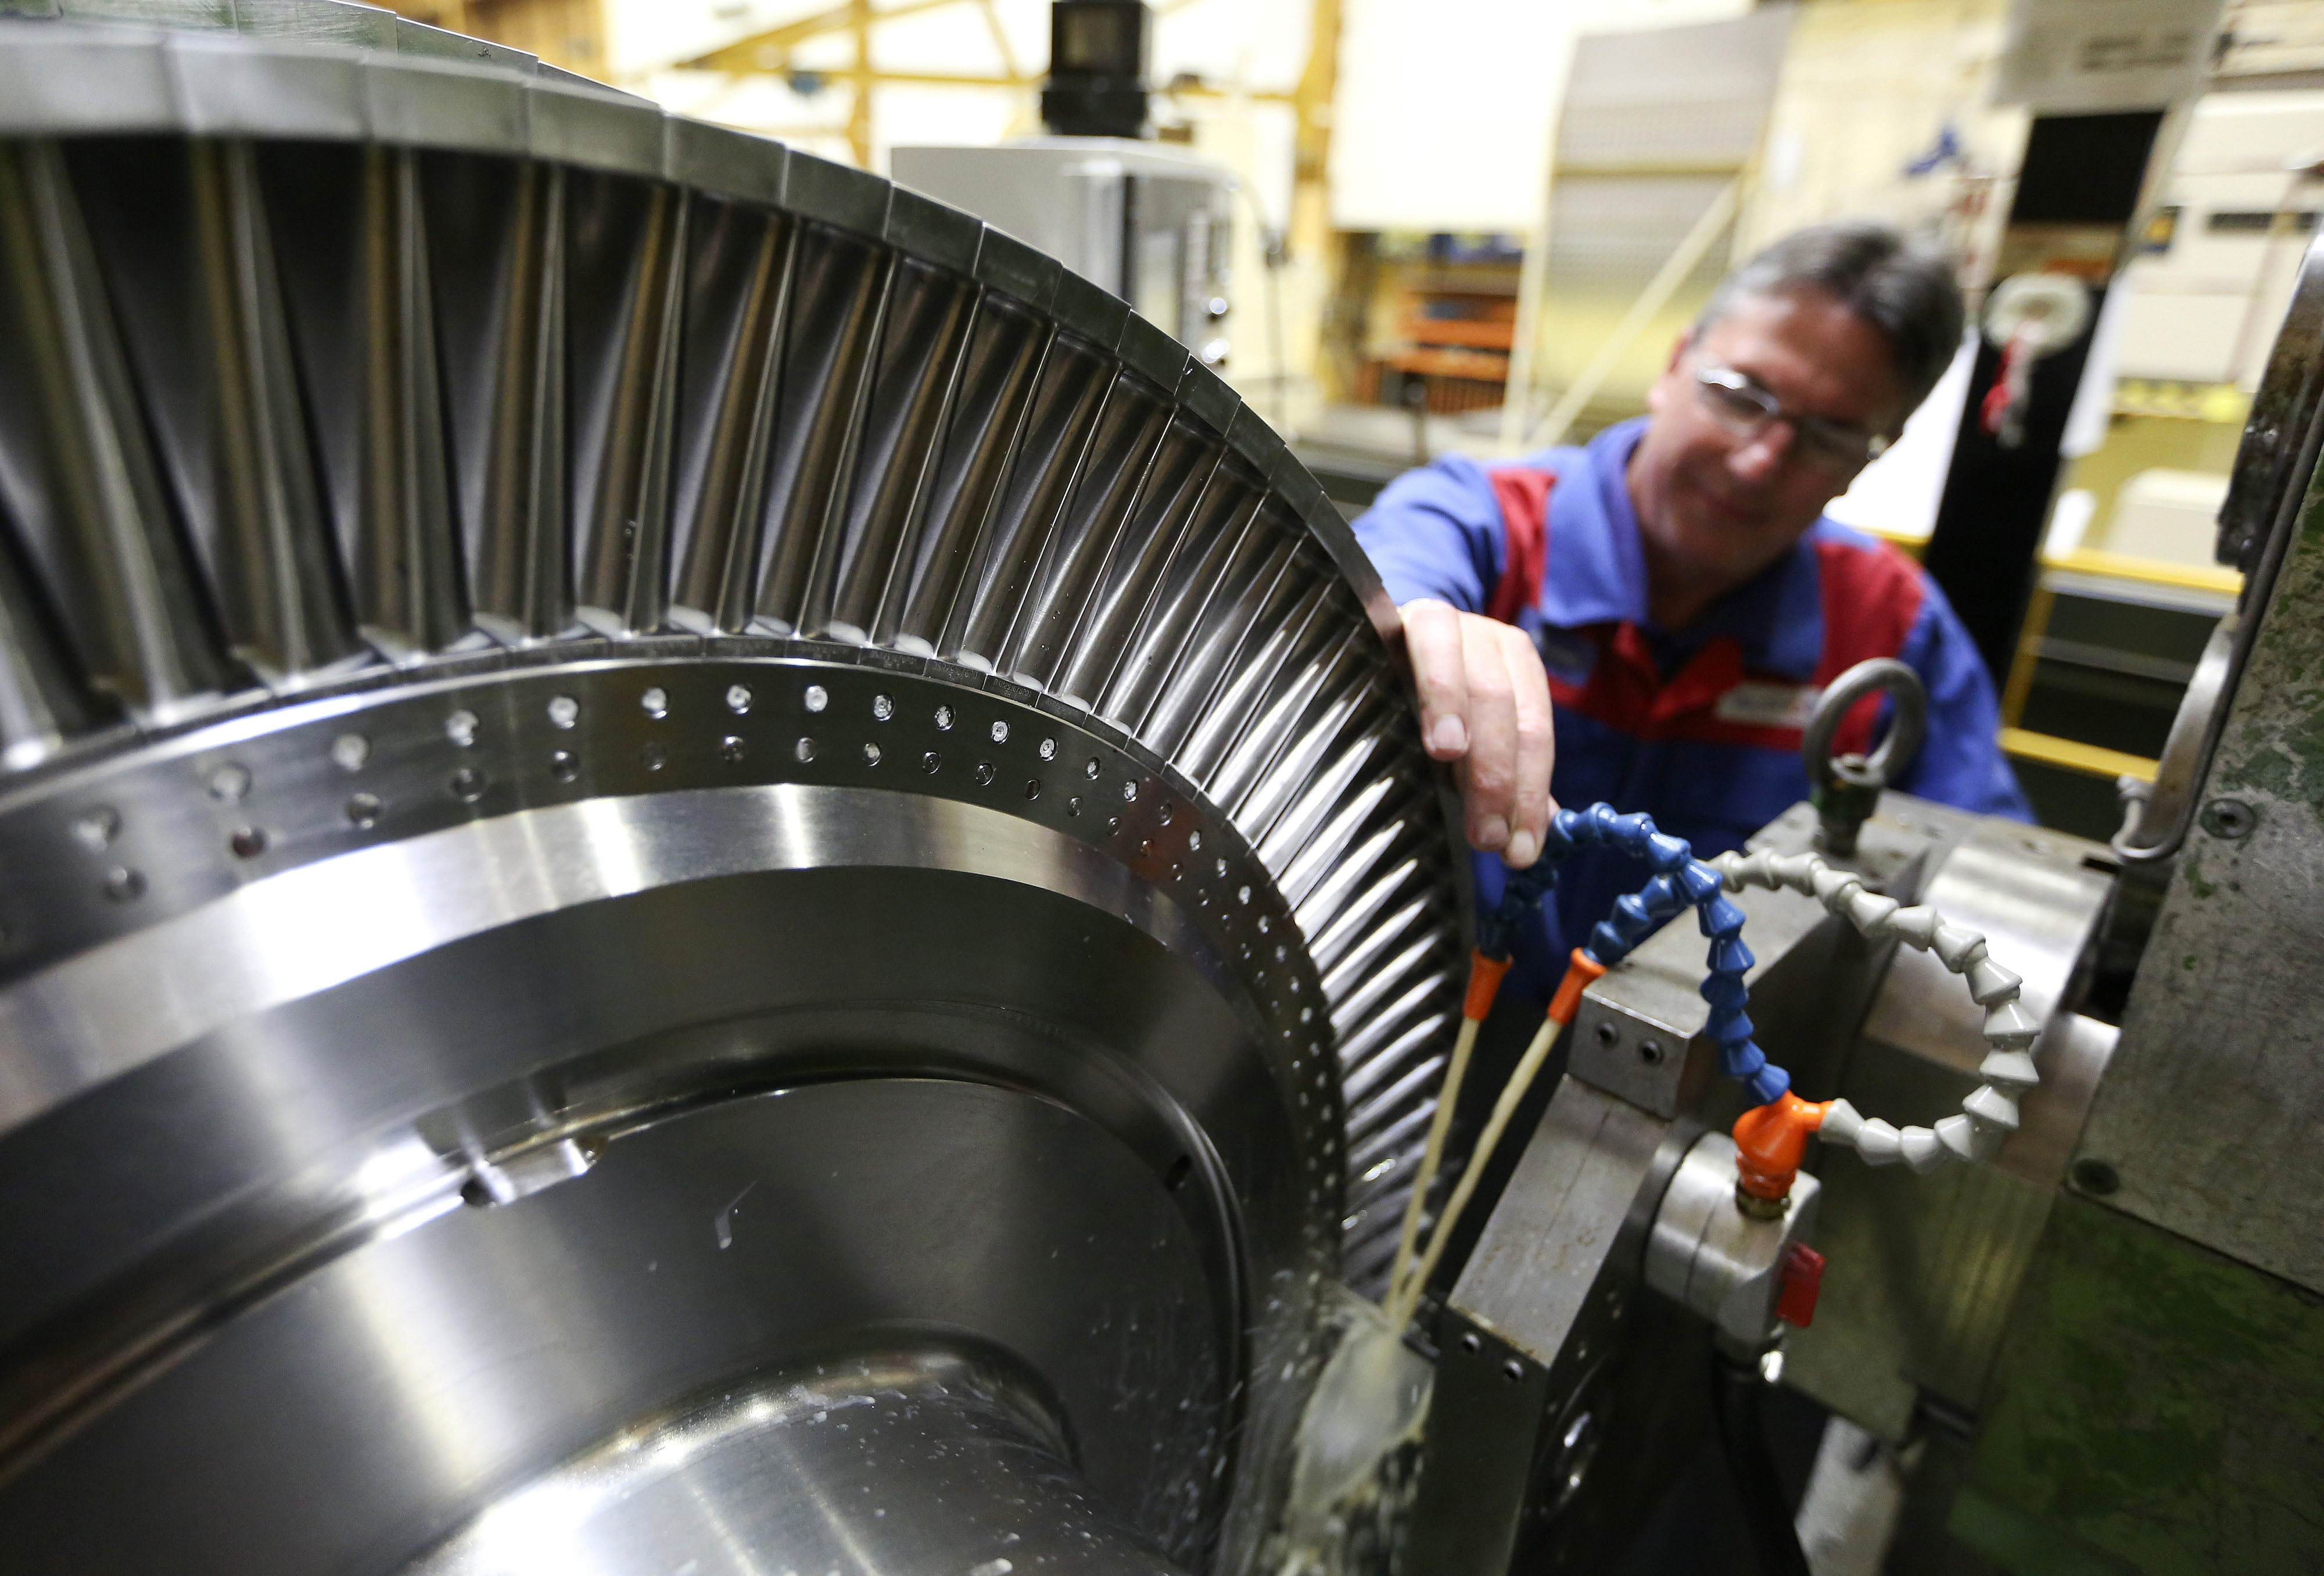 GE is fighting Siemens and Mitsubishi for supremacy in the global market for turbines.